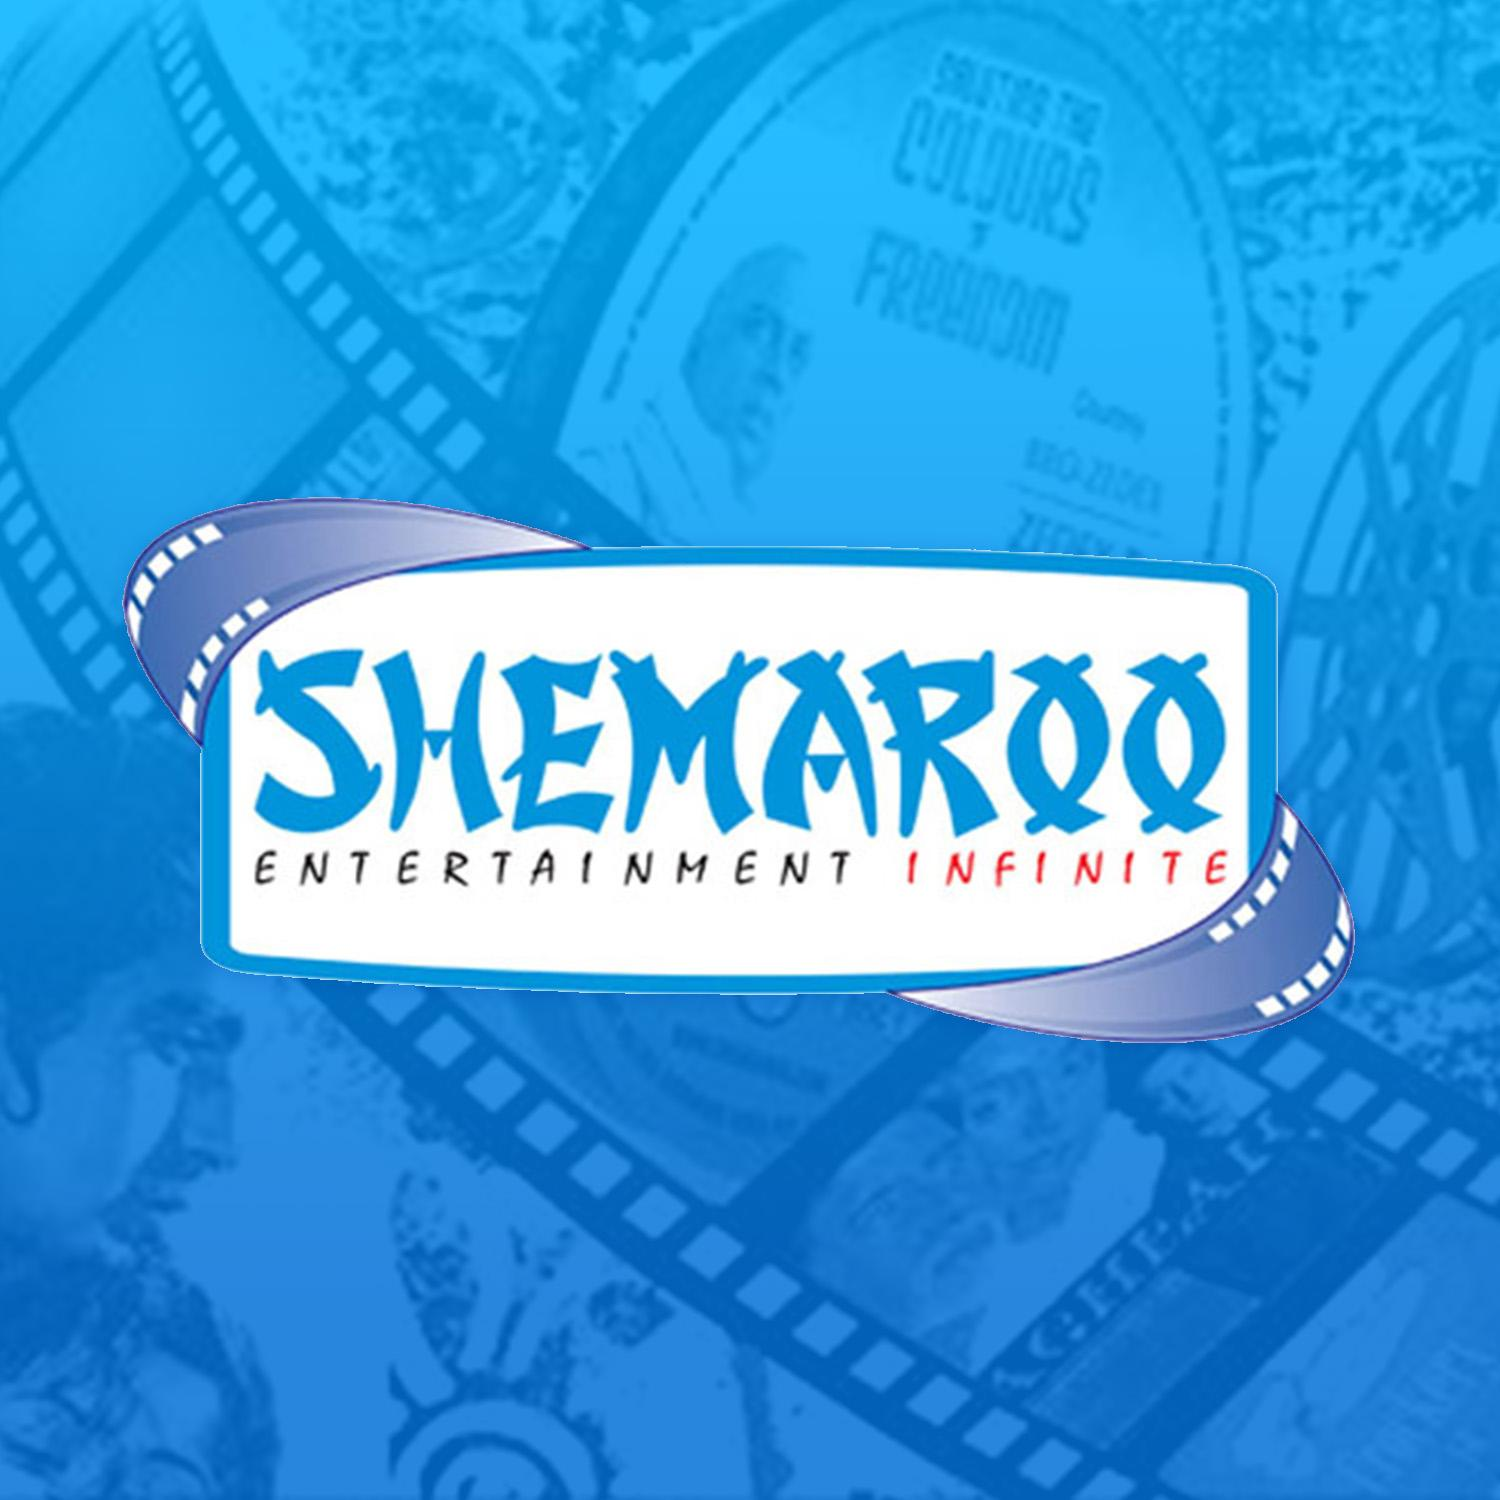 http://www.indiantelevision.com/sites/default/files/styles/smartcrop_800x800/public/images/tv-images/2016/08/11/Shemaroo.jpg?itok=XeN2_8GH